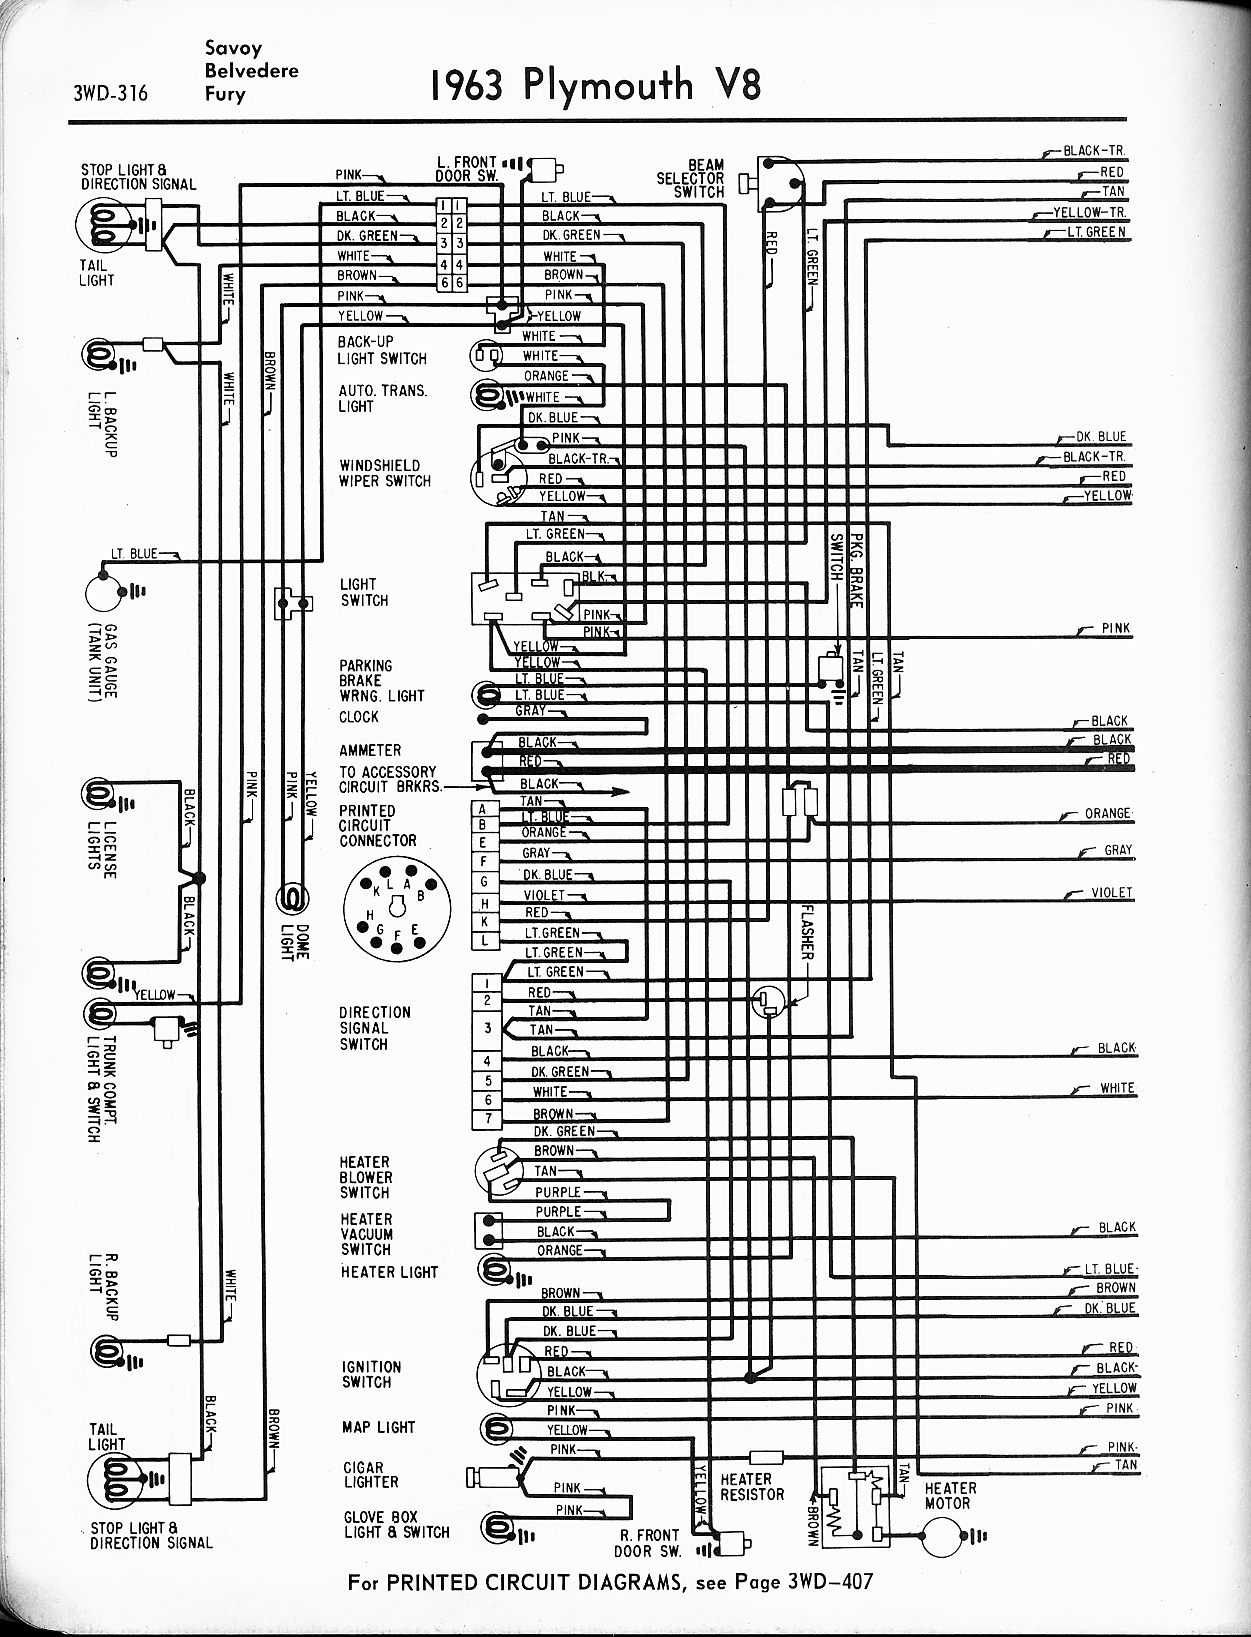 MWire5765 316 3800 series 2 wiring diagram gm ecu pinout \u2022 wiring diagrams j free pontiac wiring diagrams at honlapkeszites.co